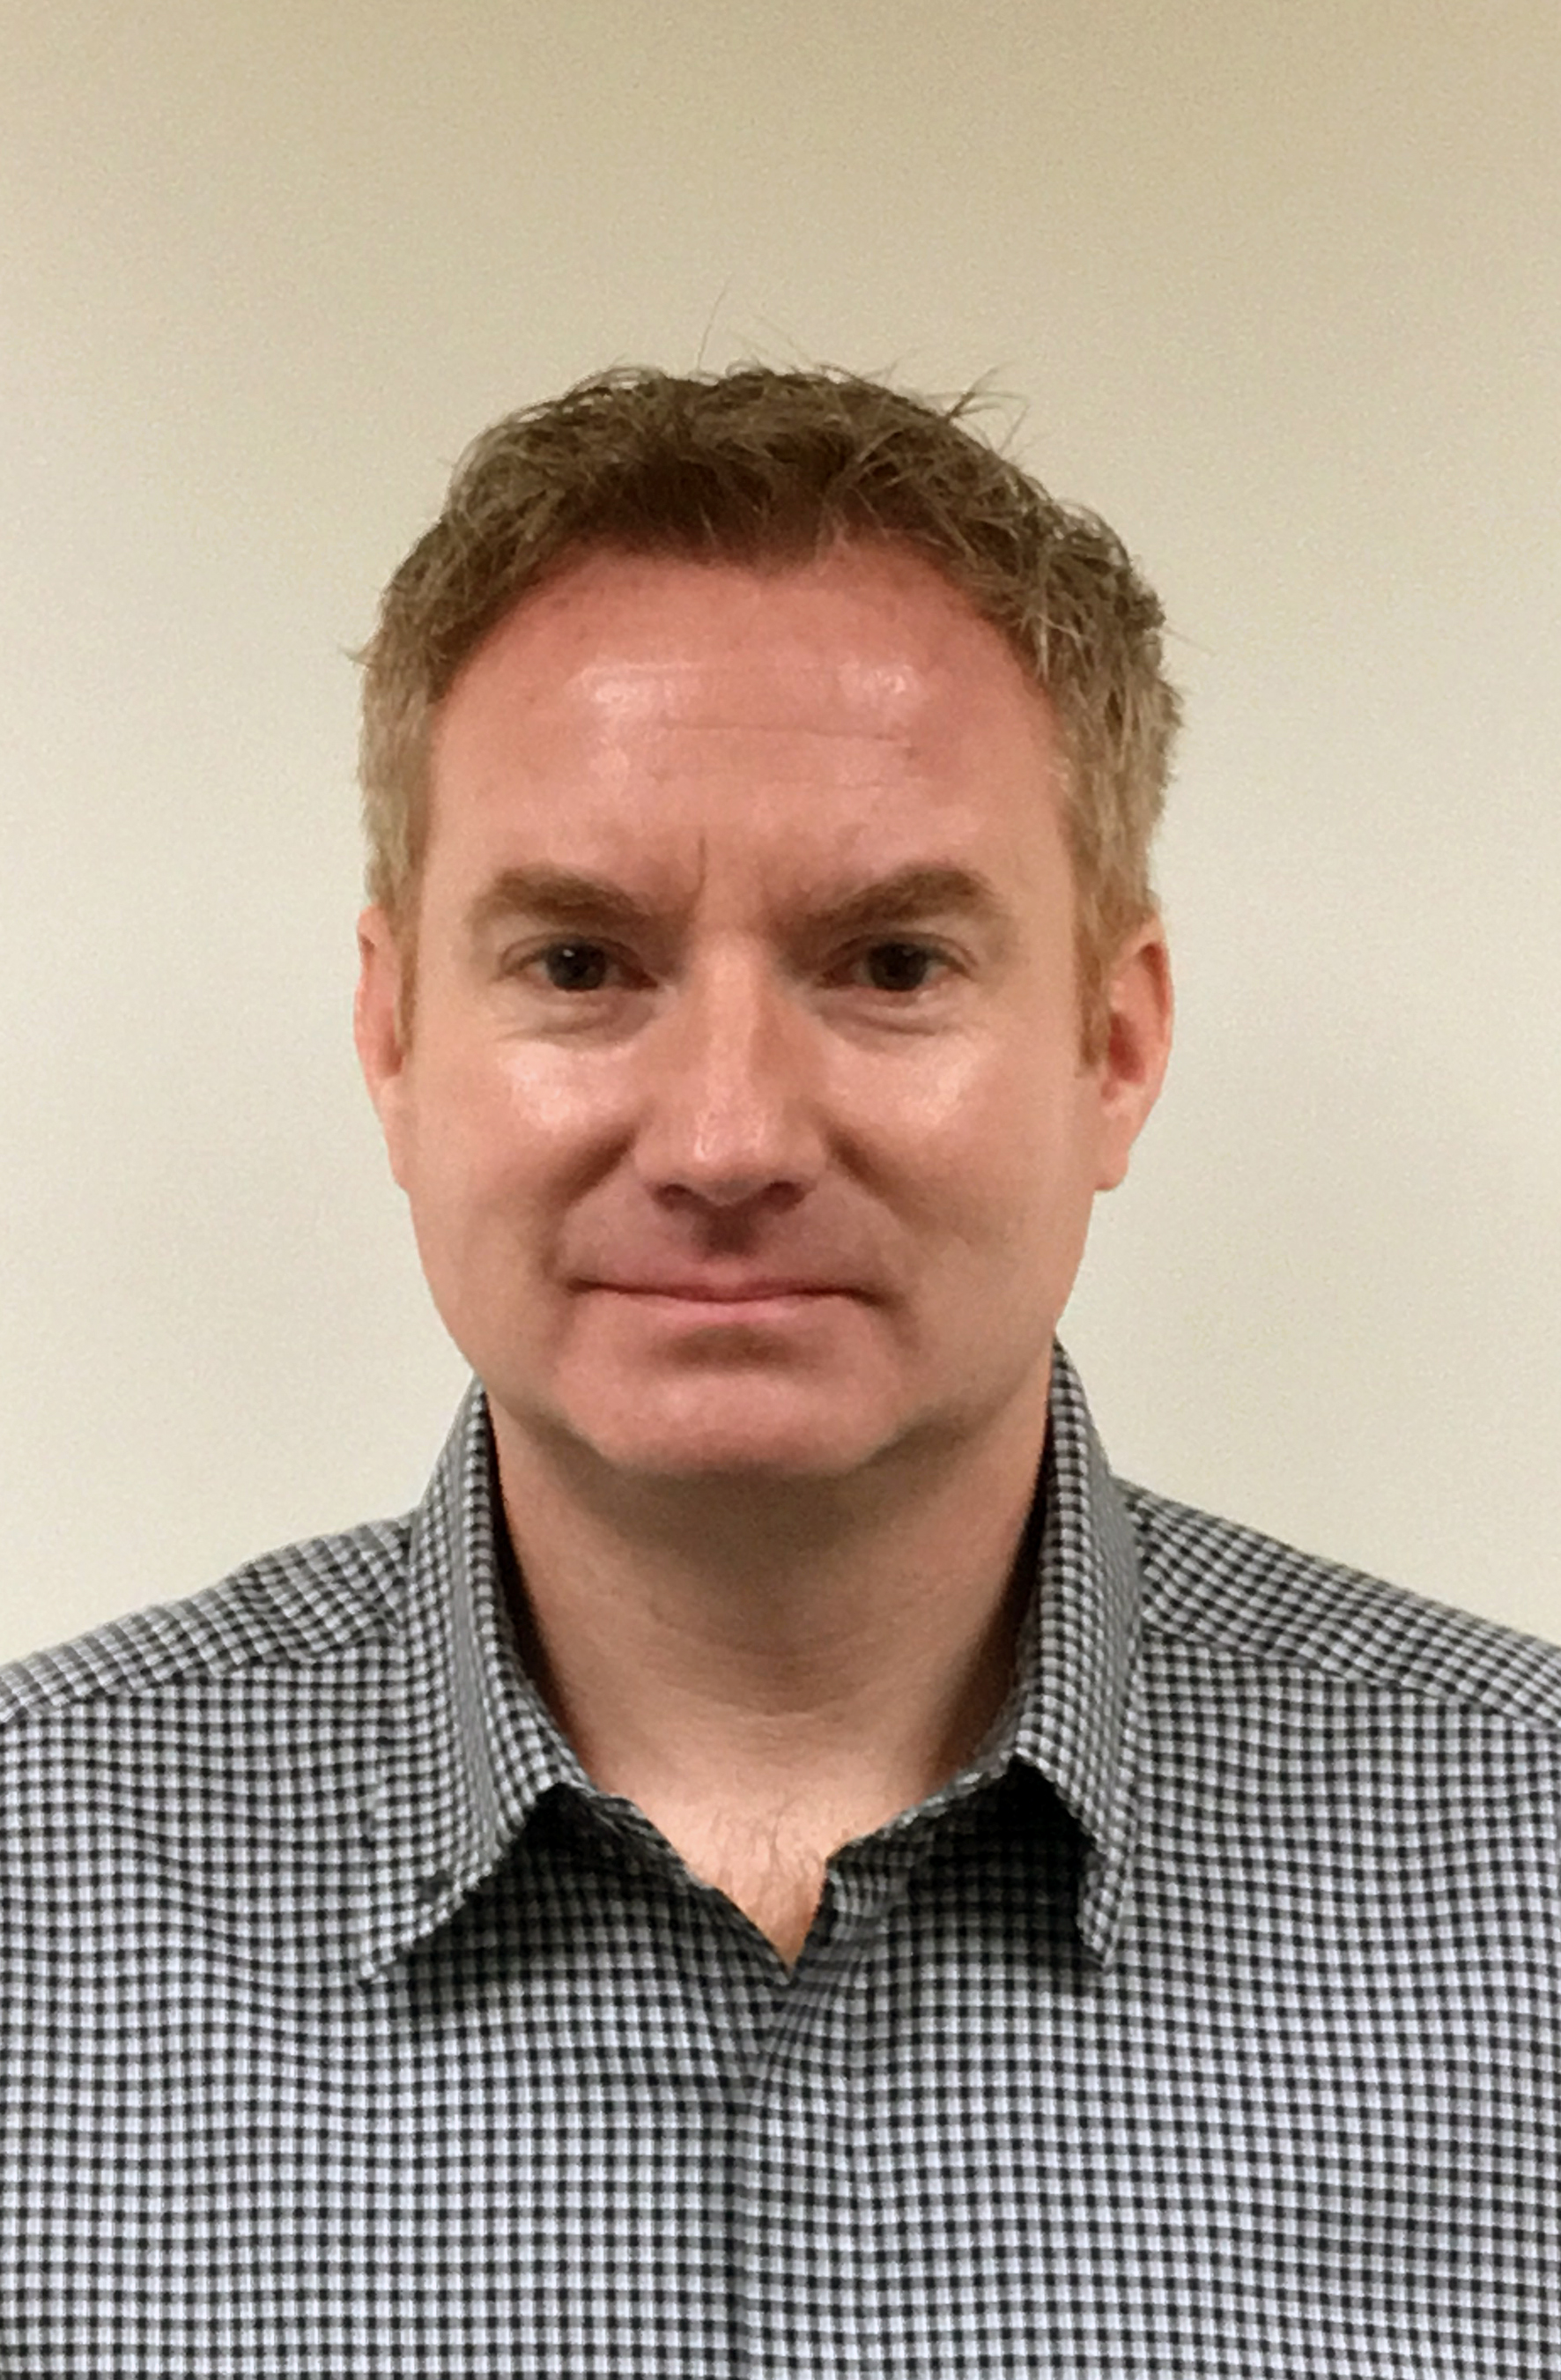 Spelsberg UK appoints Chris Smith as Area Sales Manager for the South West